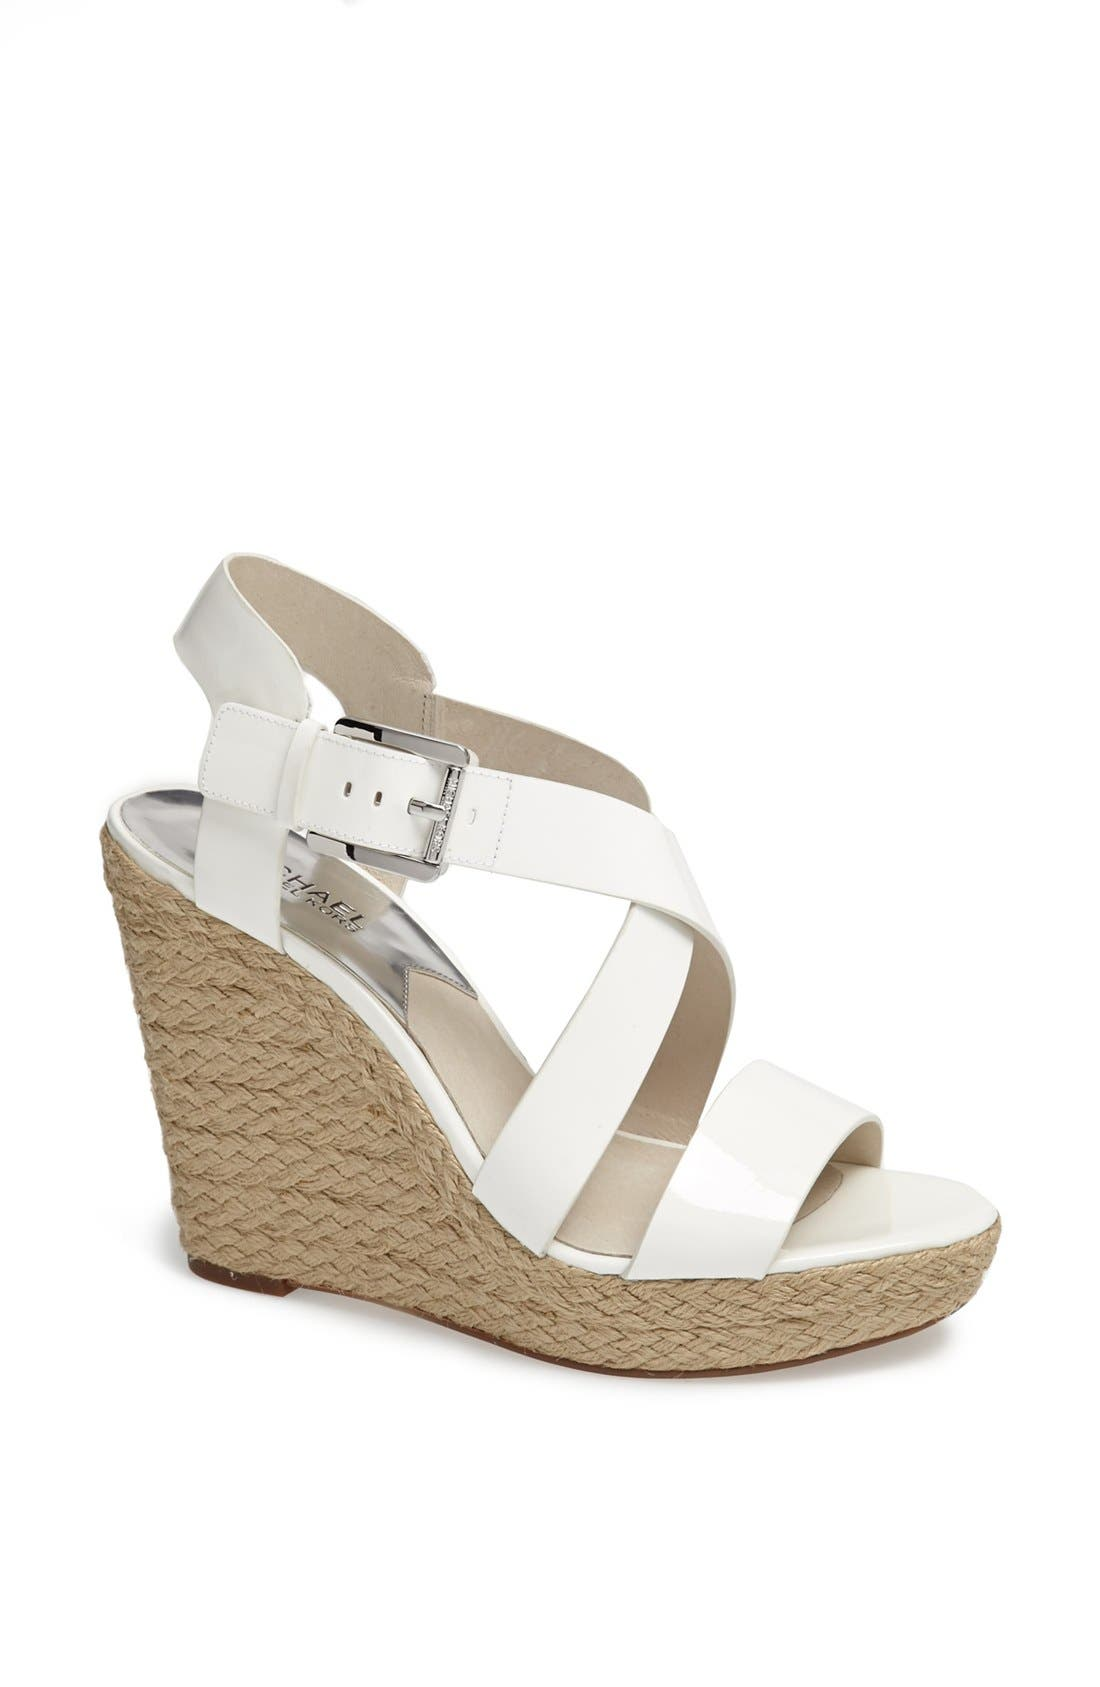 'Giovanna' Wedge Sandal, Main, color, 101